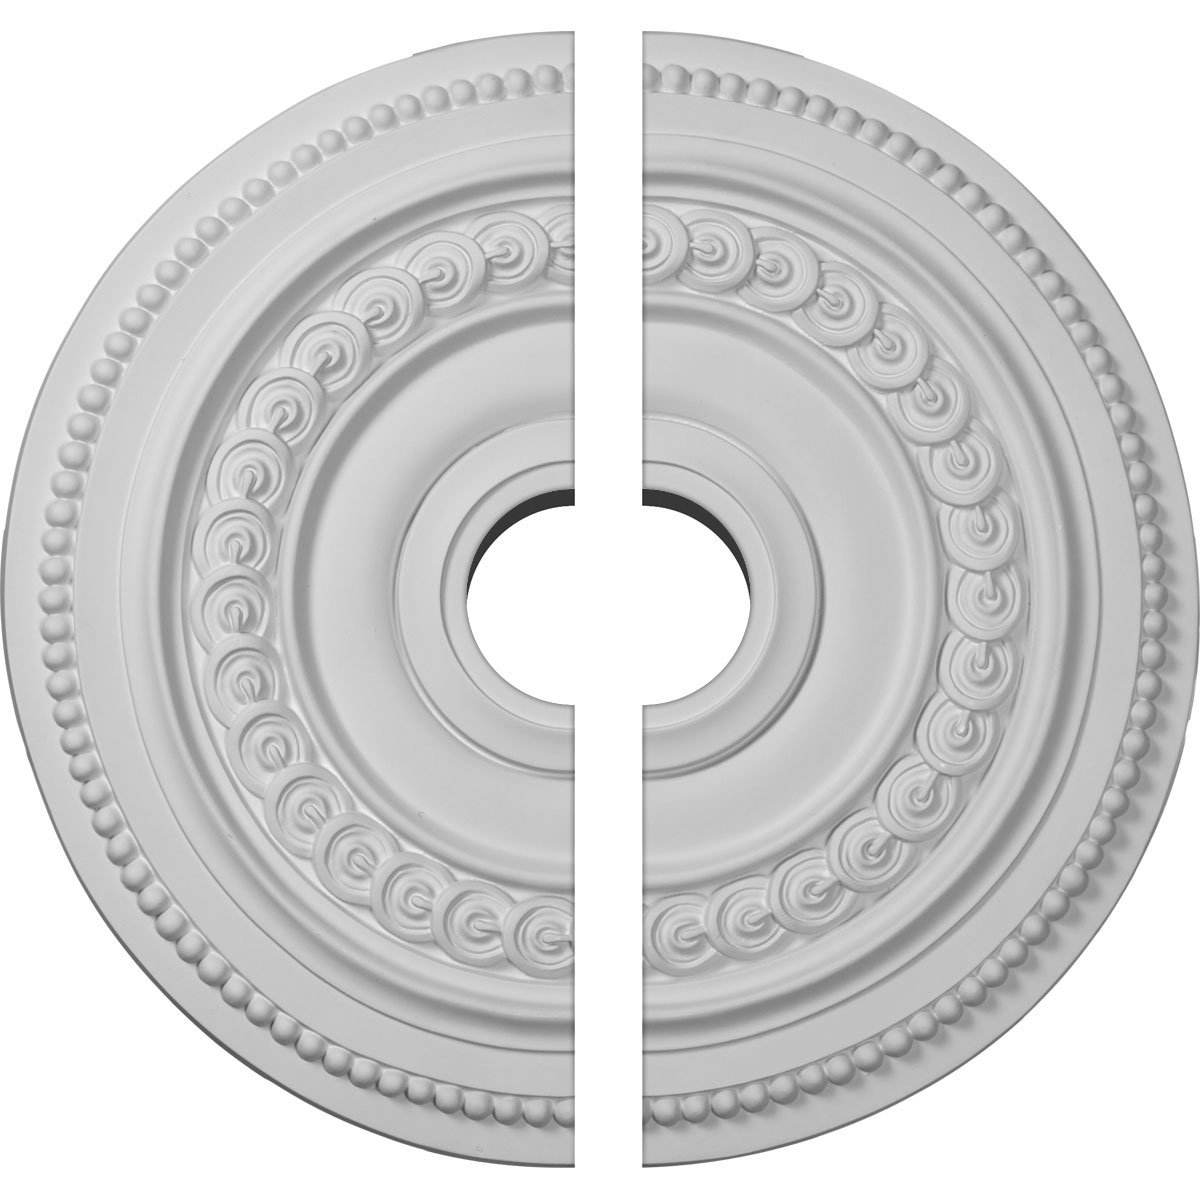 Ekena Millwork CM18OL2-03500 18''OD x 3 1/2''ID x 1 1/4''P Oldham Ceiling Medallion, Two Piece (Fits Canopies up to 8 5/8''), Factory Primed and Ready to Paint